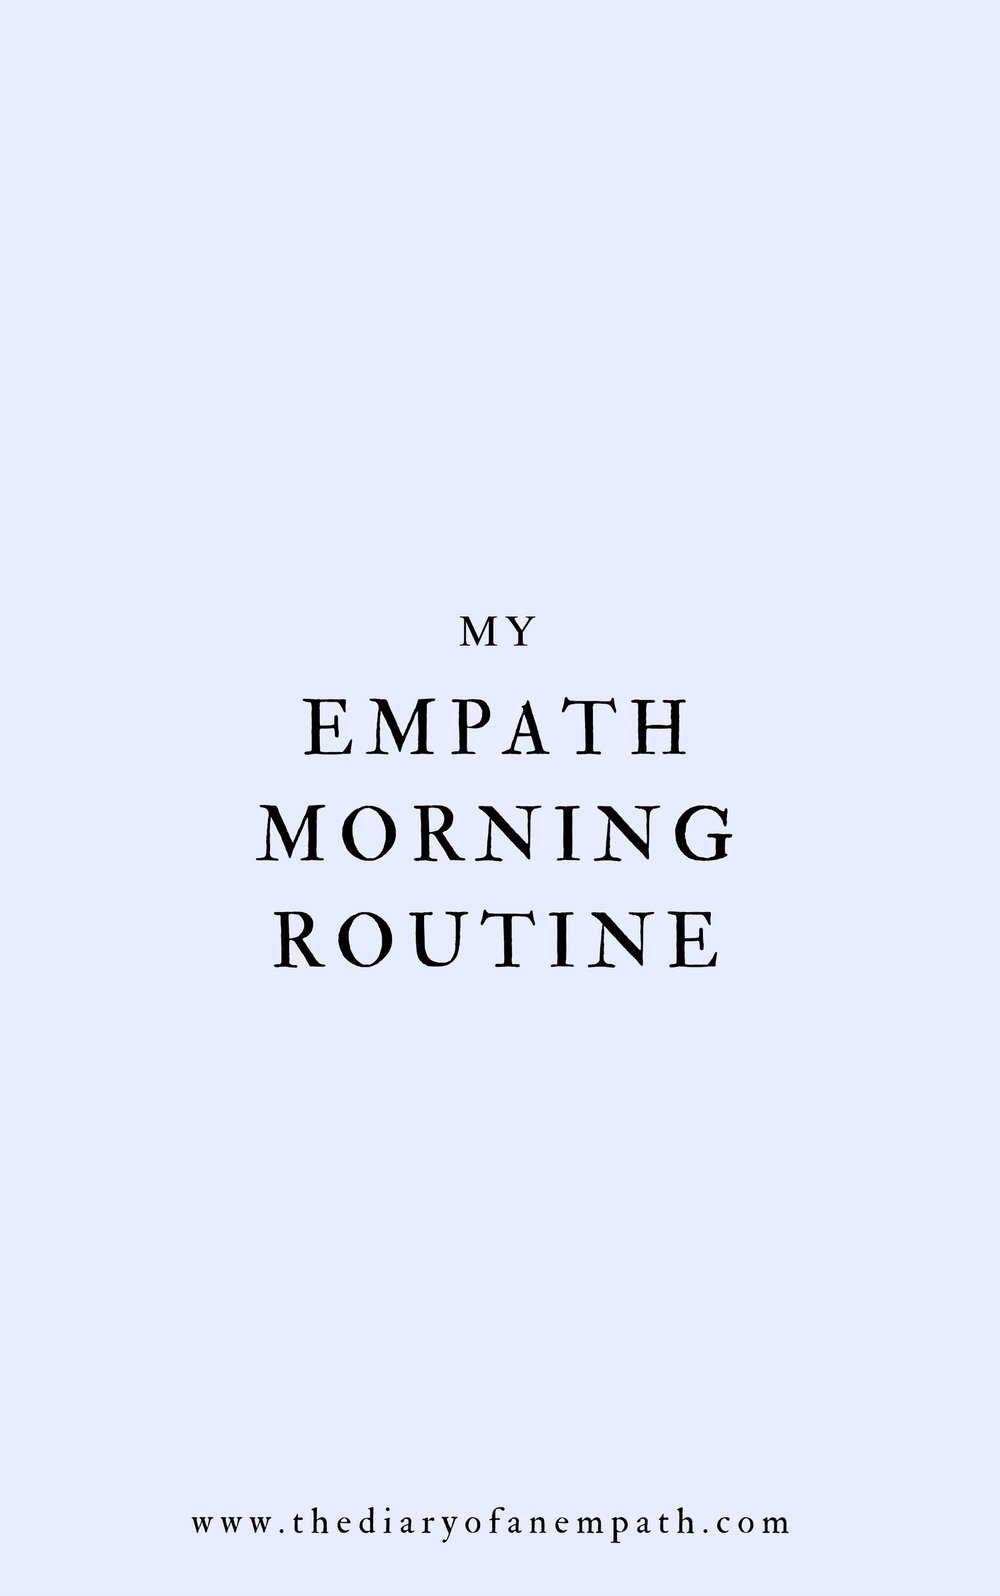 empath morning routine, thediaryofanempath.com